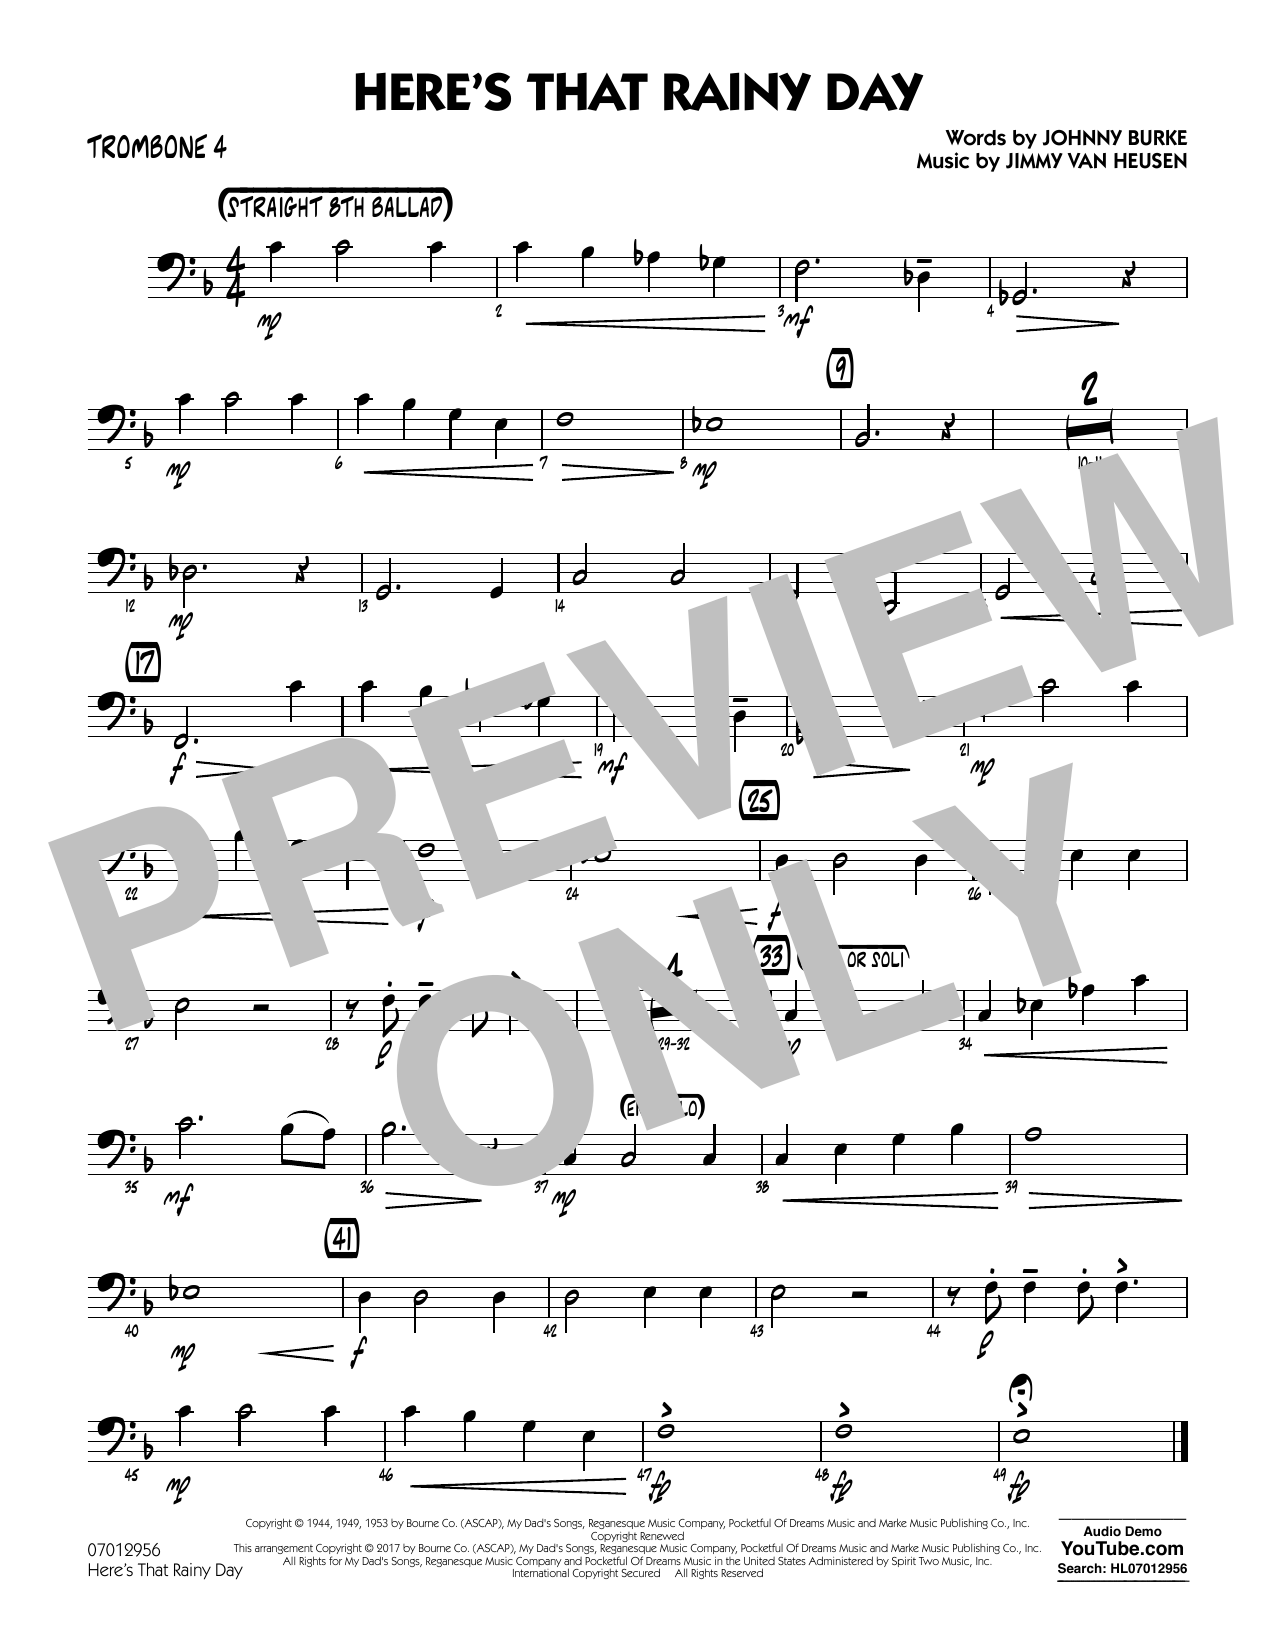 Rick Stitzel Here's That Rainy Day - Trombone 4 sheet music notes and chords. Download Printable PDF.